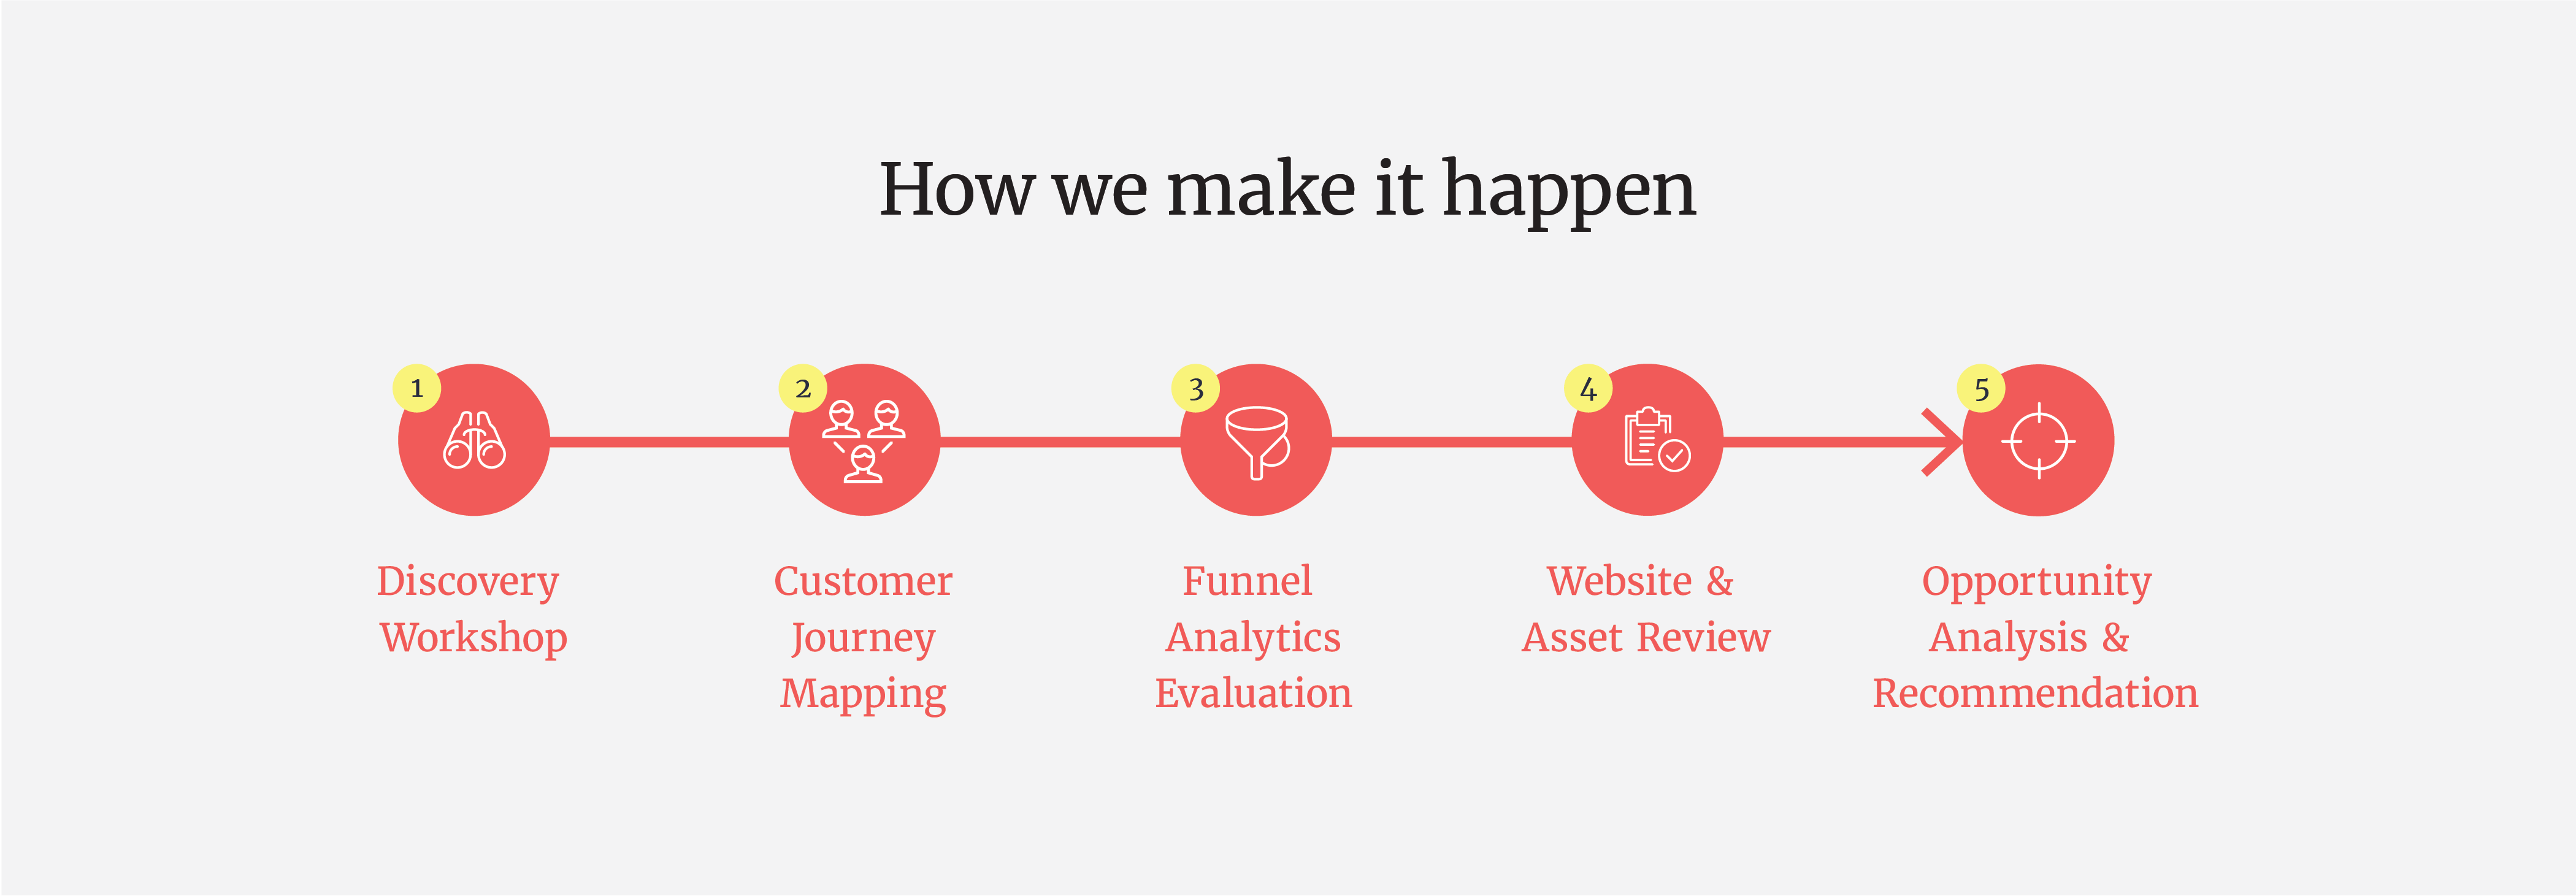 conversion-audit-process-illustration-v3